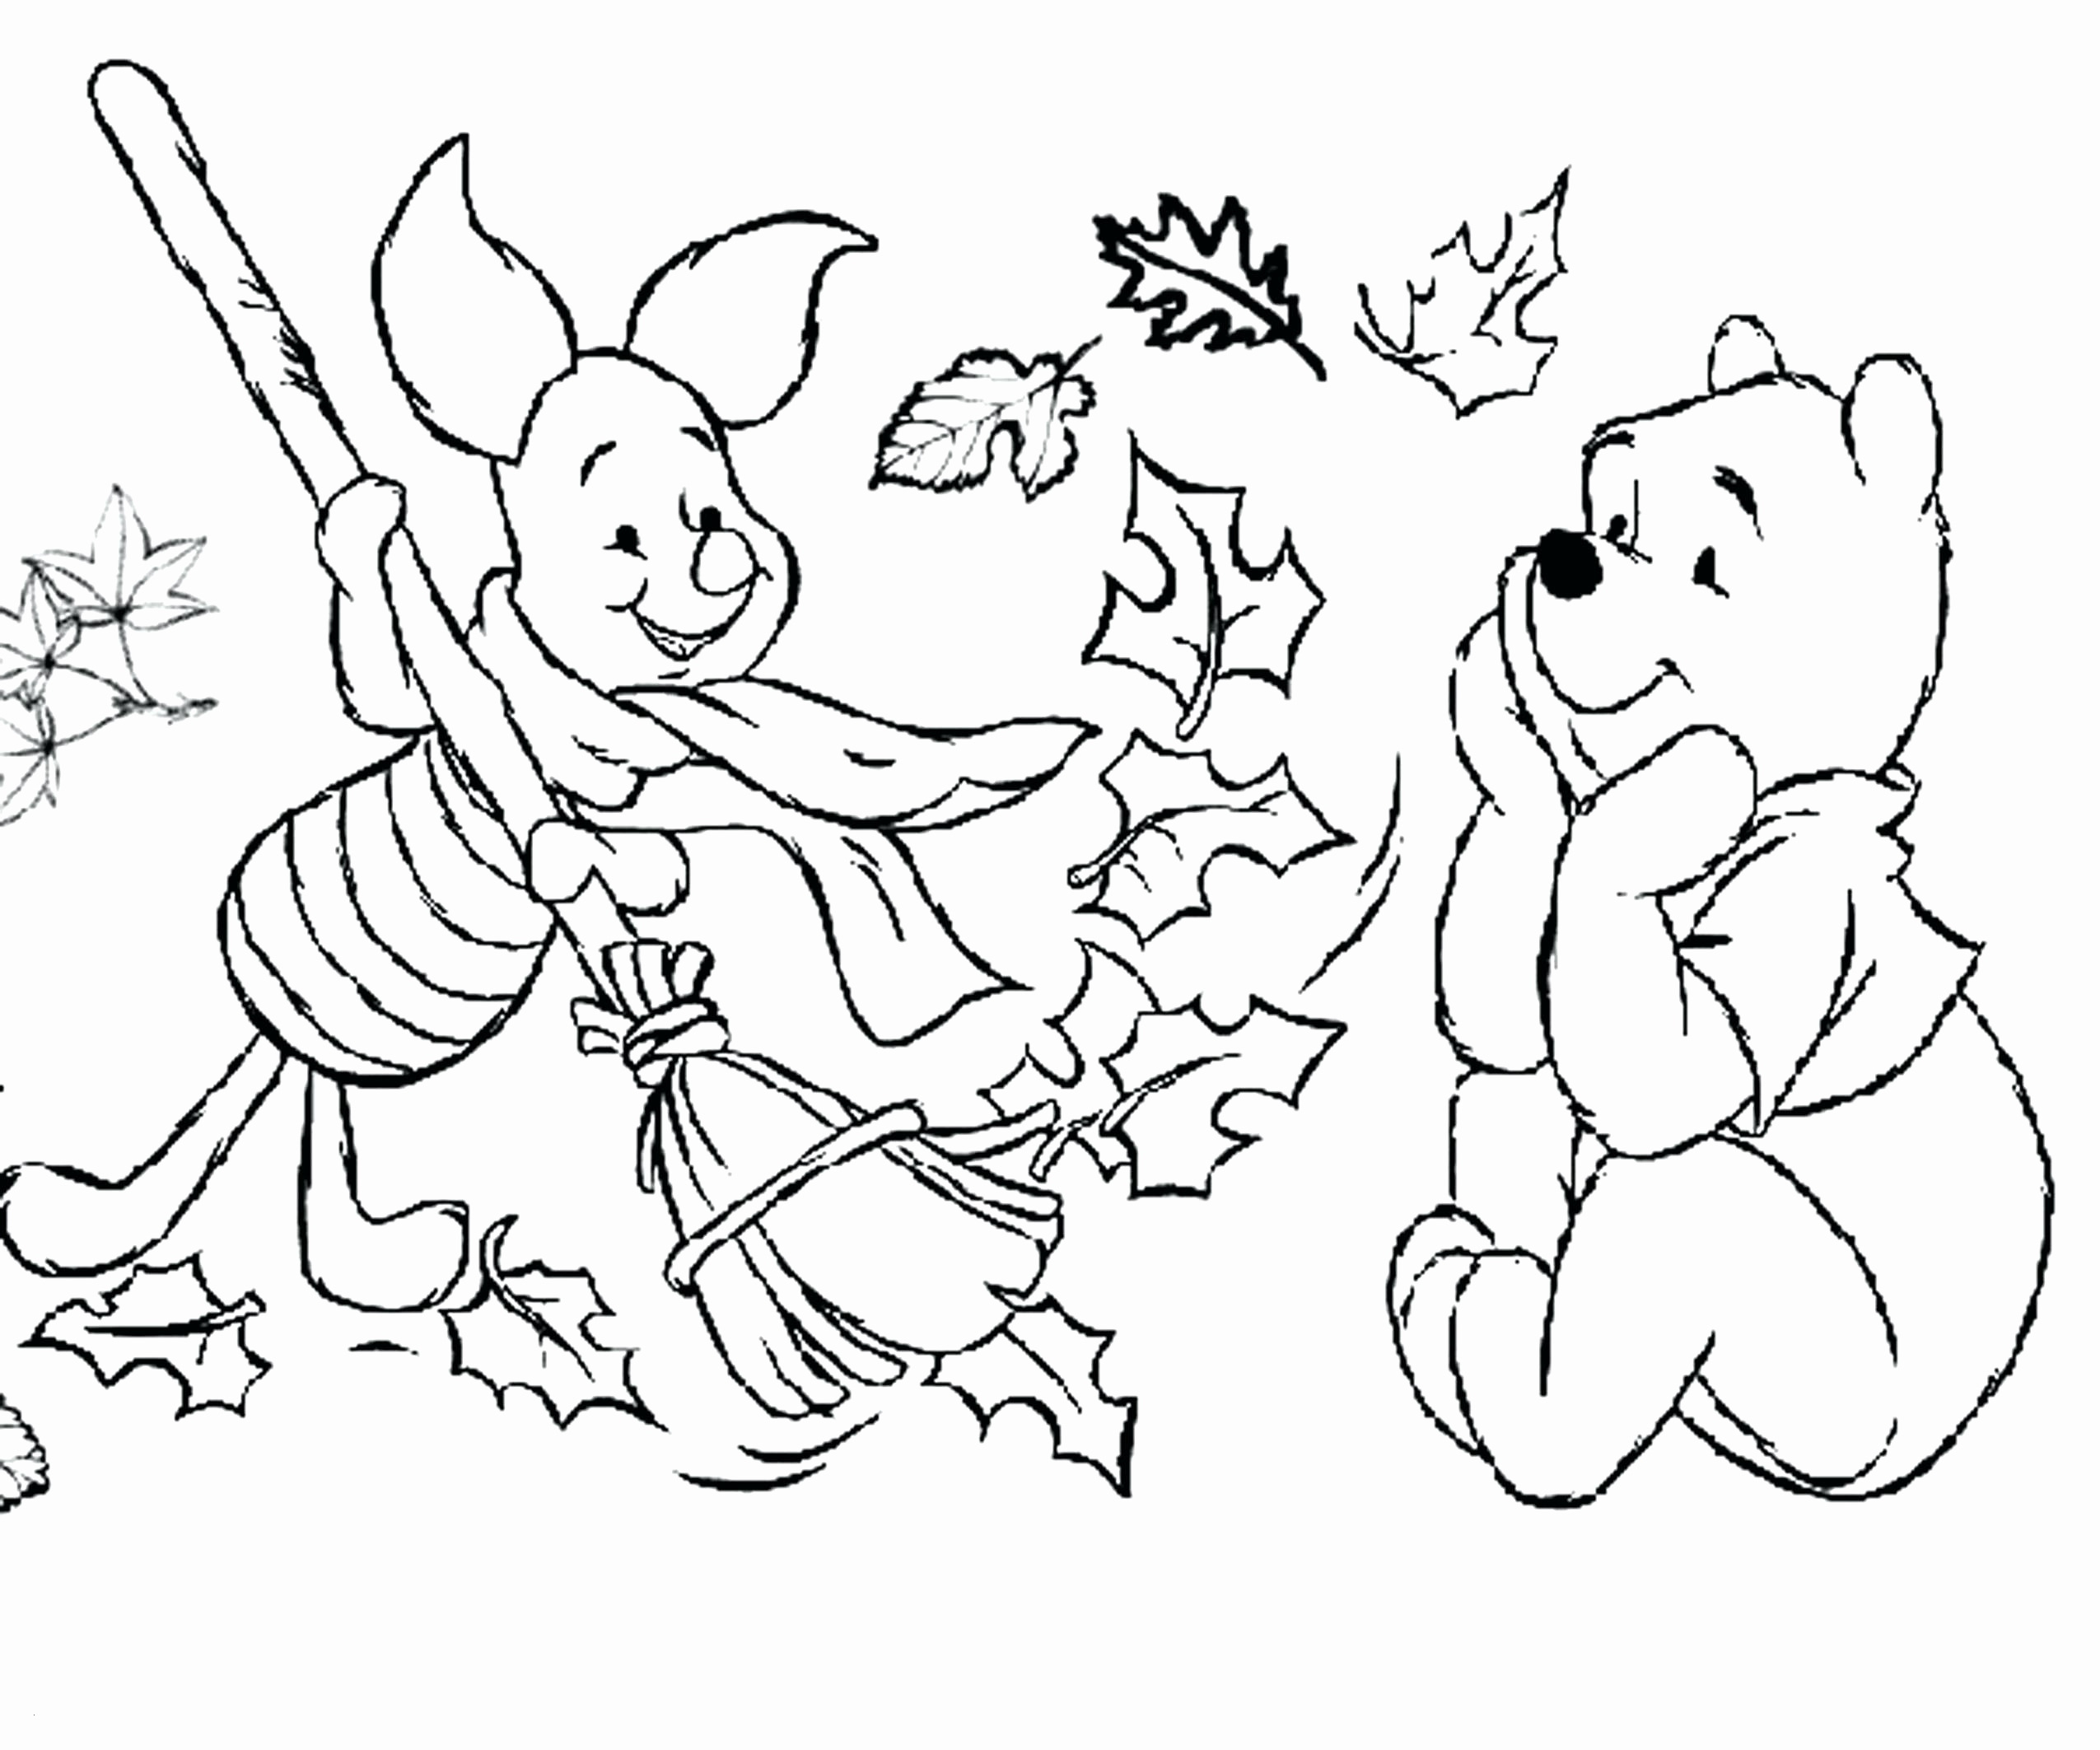 childrens bible coloring pages Collection-Preschool Fall Coloring Pages Bible Coloring Sheets for Kids Wonderful Preschool Fall Coloring 6-s